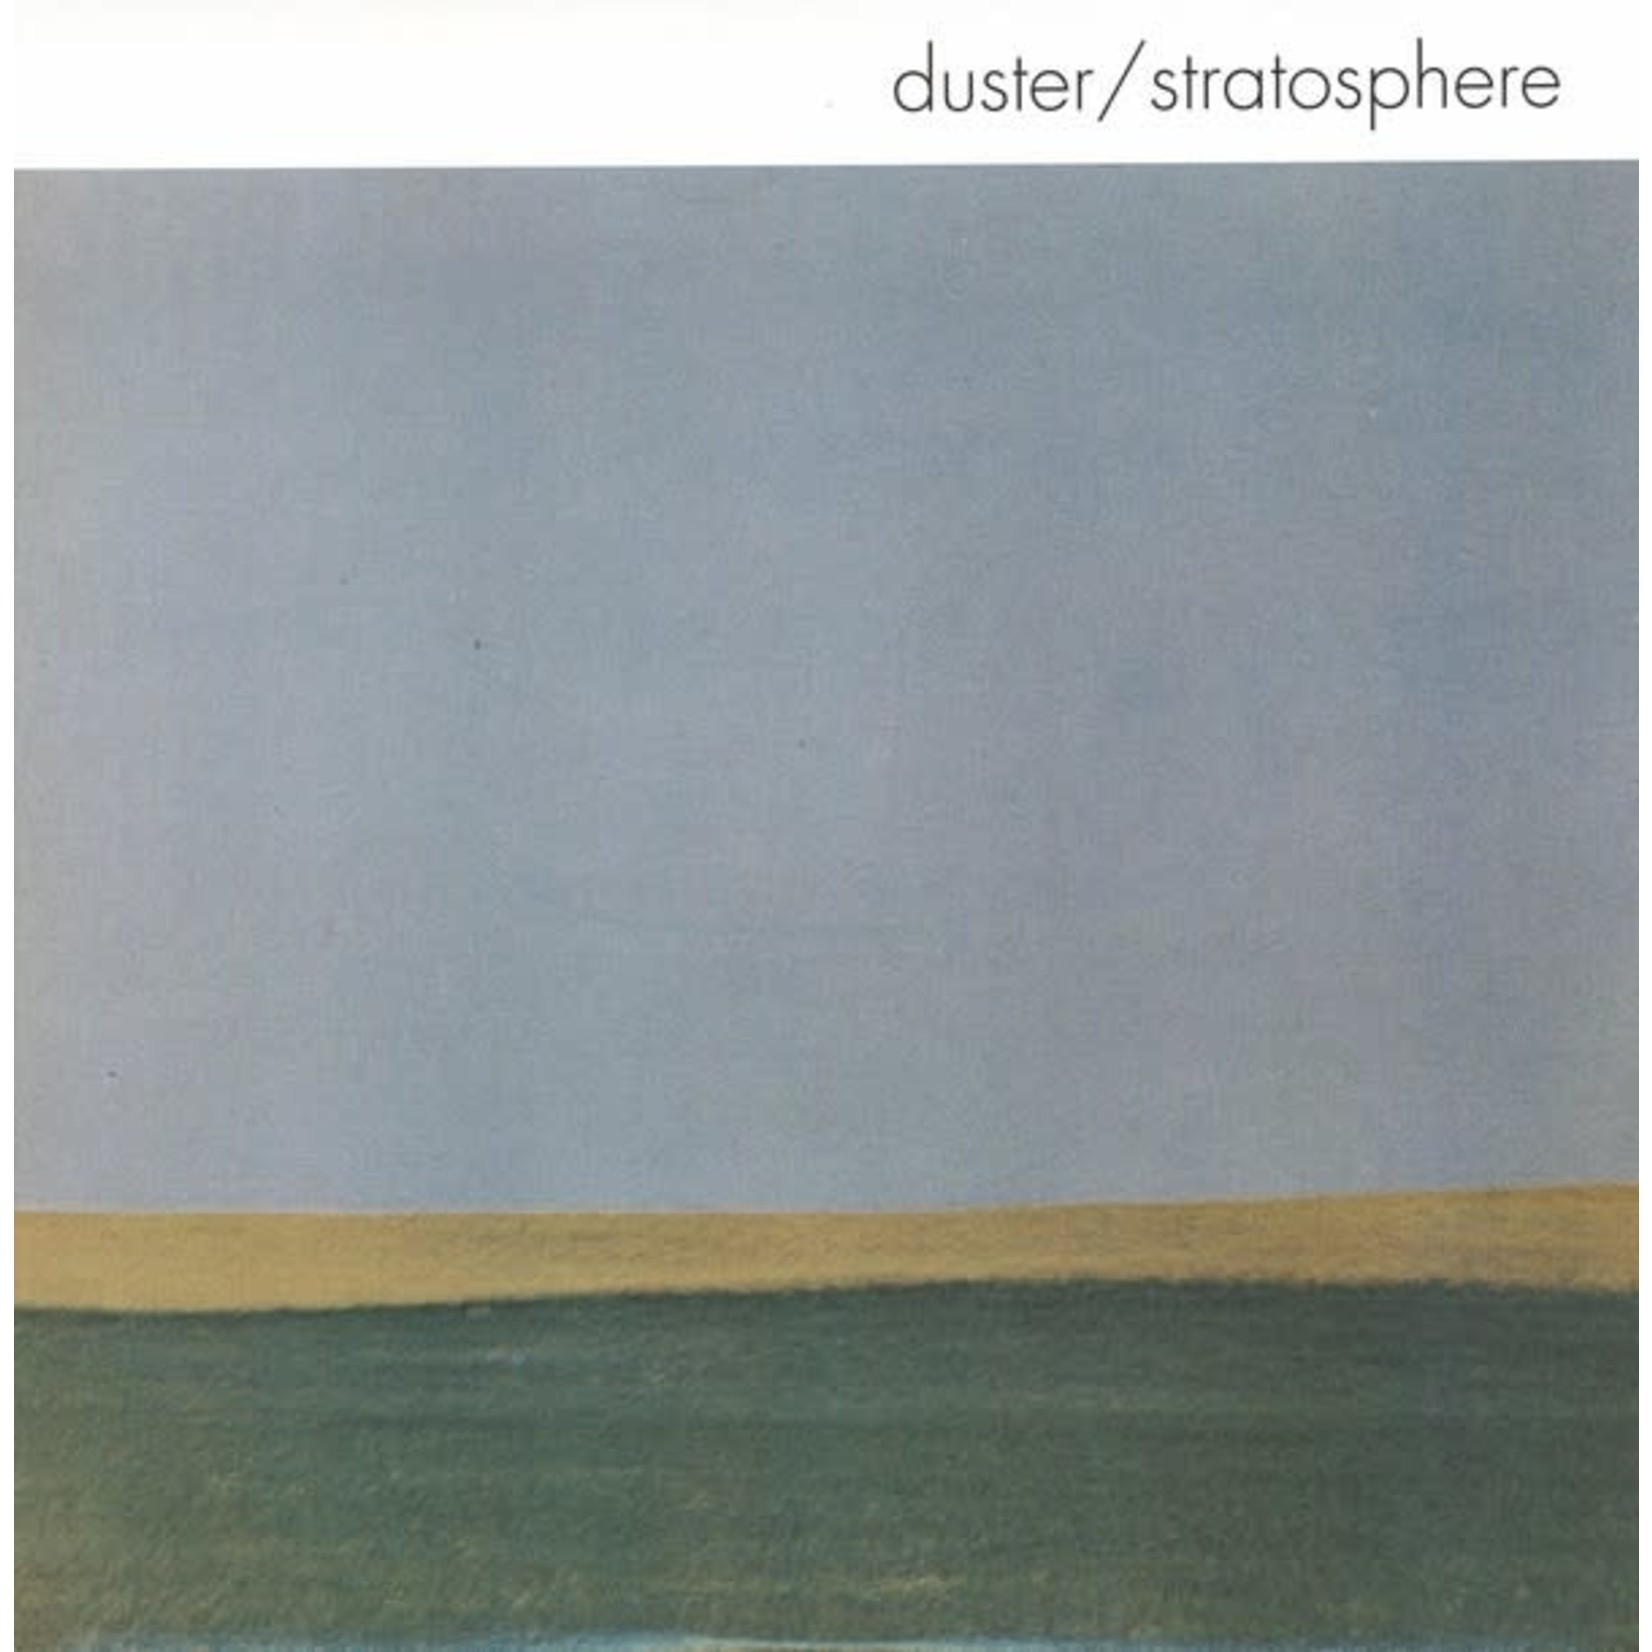 [New] Duster: Stratosphere